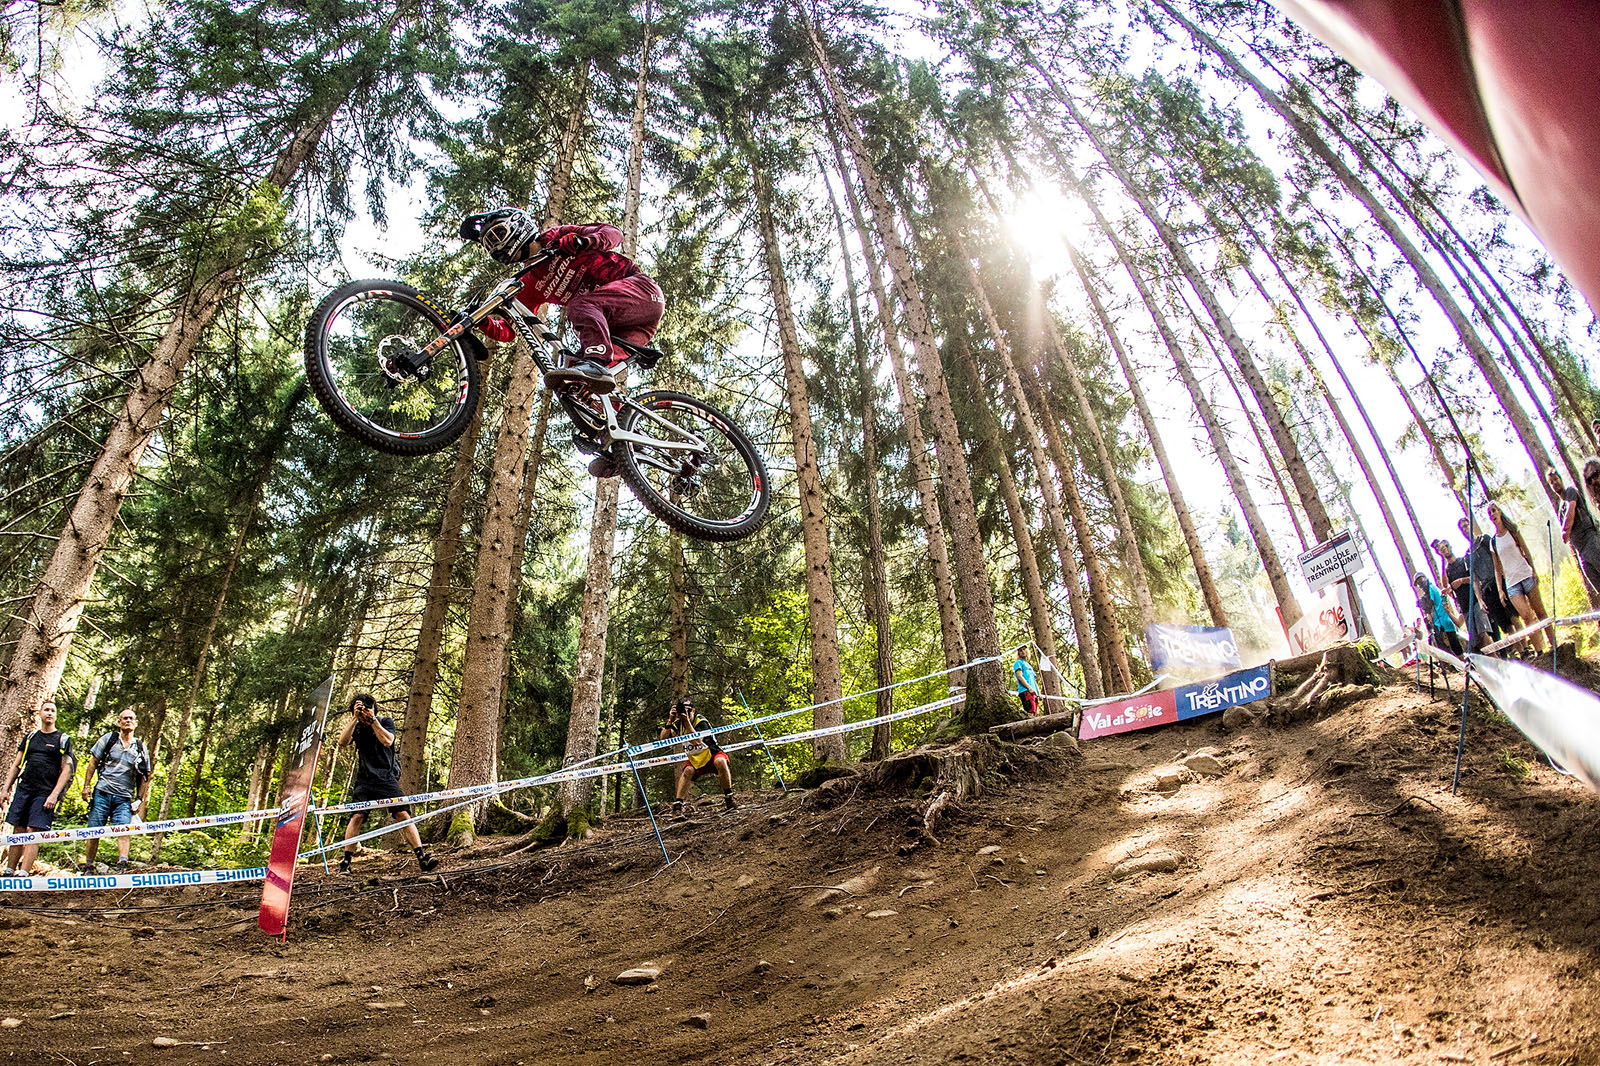 Luca Shaw going long off a jump at Val di Sole